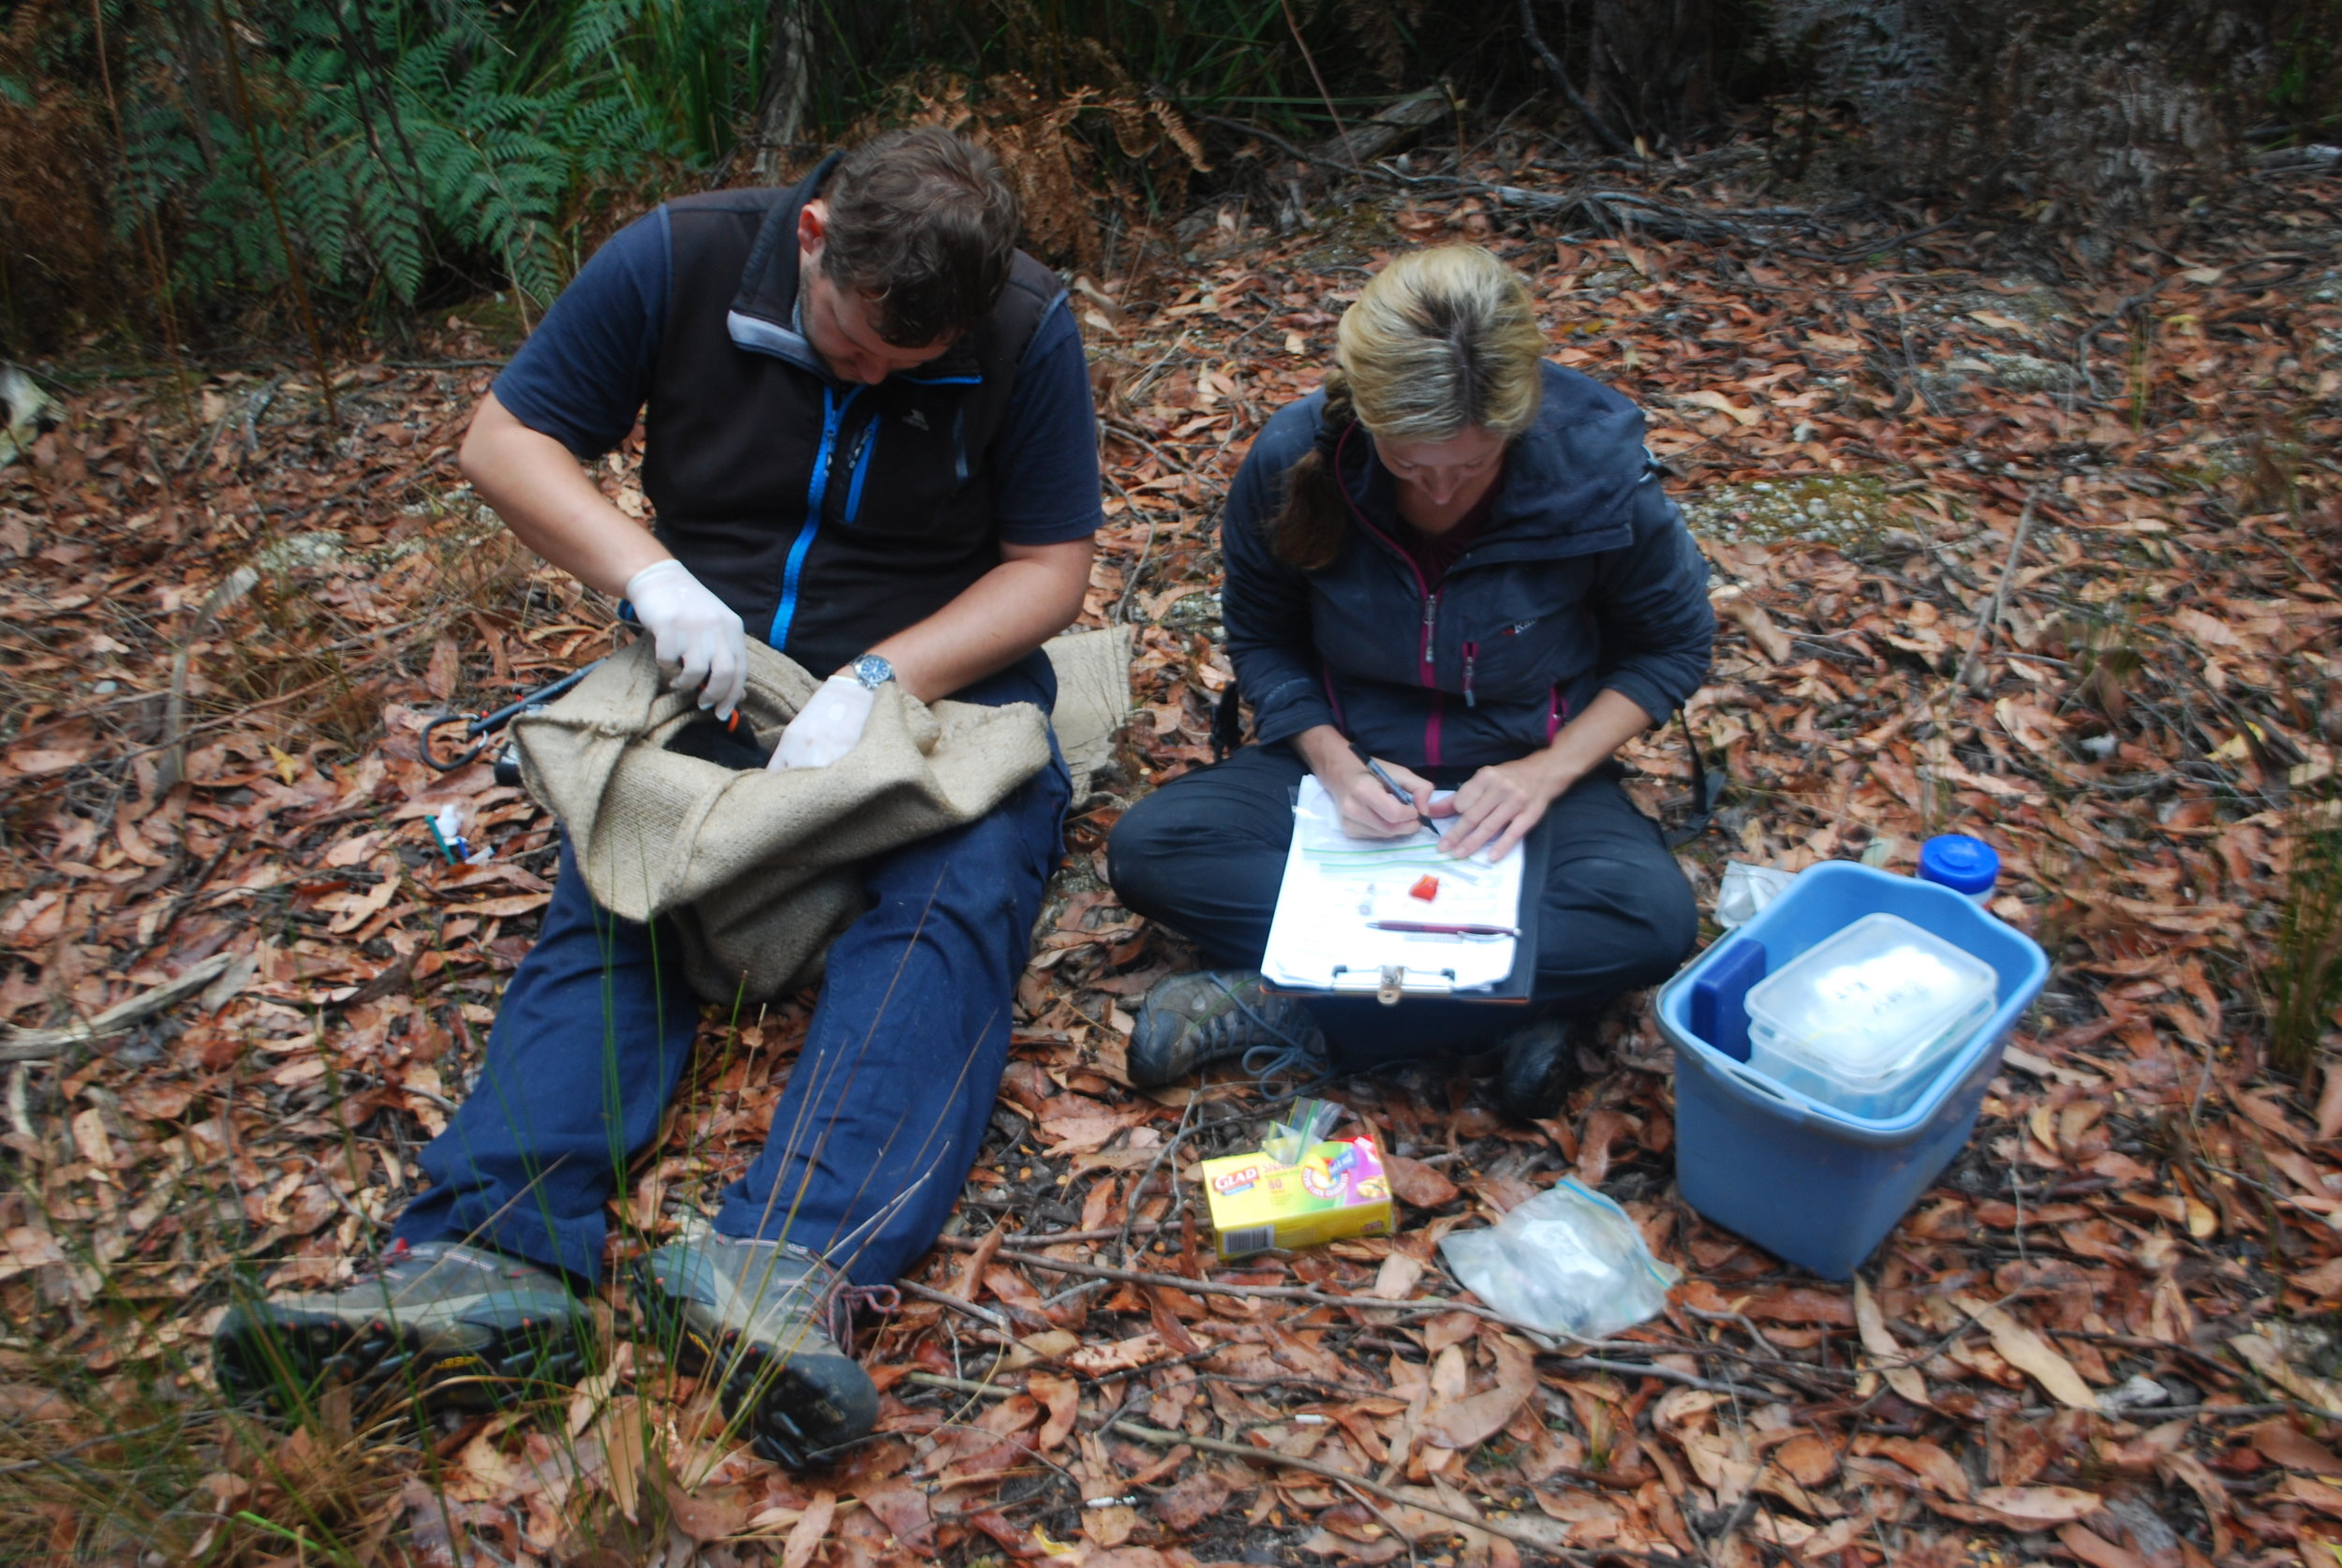 Here's Dave measuring a devil. It'd be extremely cumbersome to both take and record the measurements while controlling and manipulating a devil-in-a-sack, so data-recording is another important task for volunteers.   Among the parts of the devil Dave inspects are its paws: